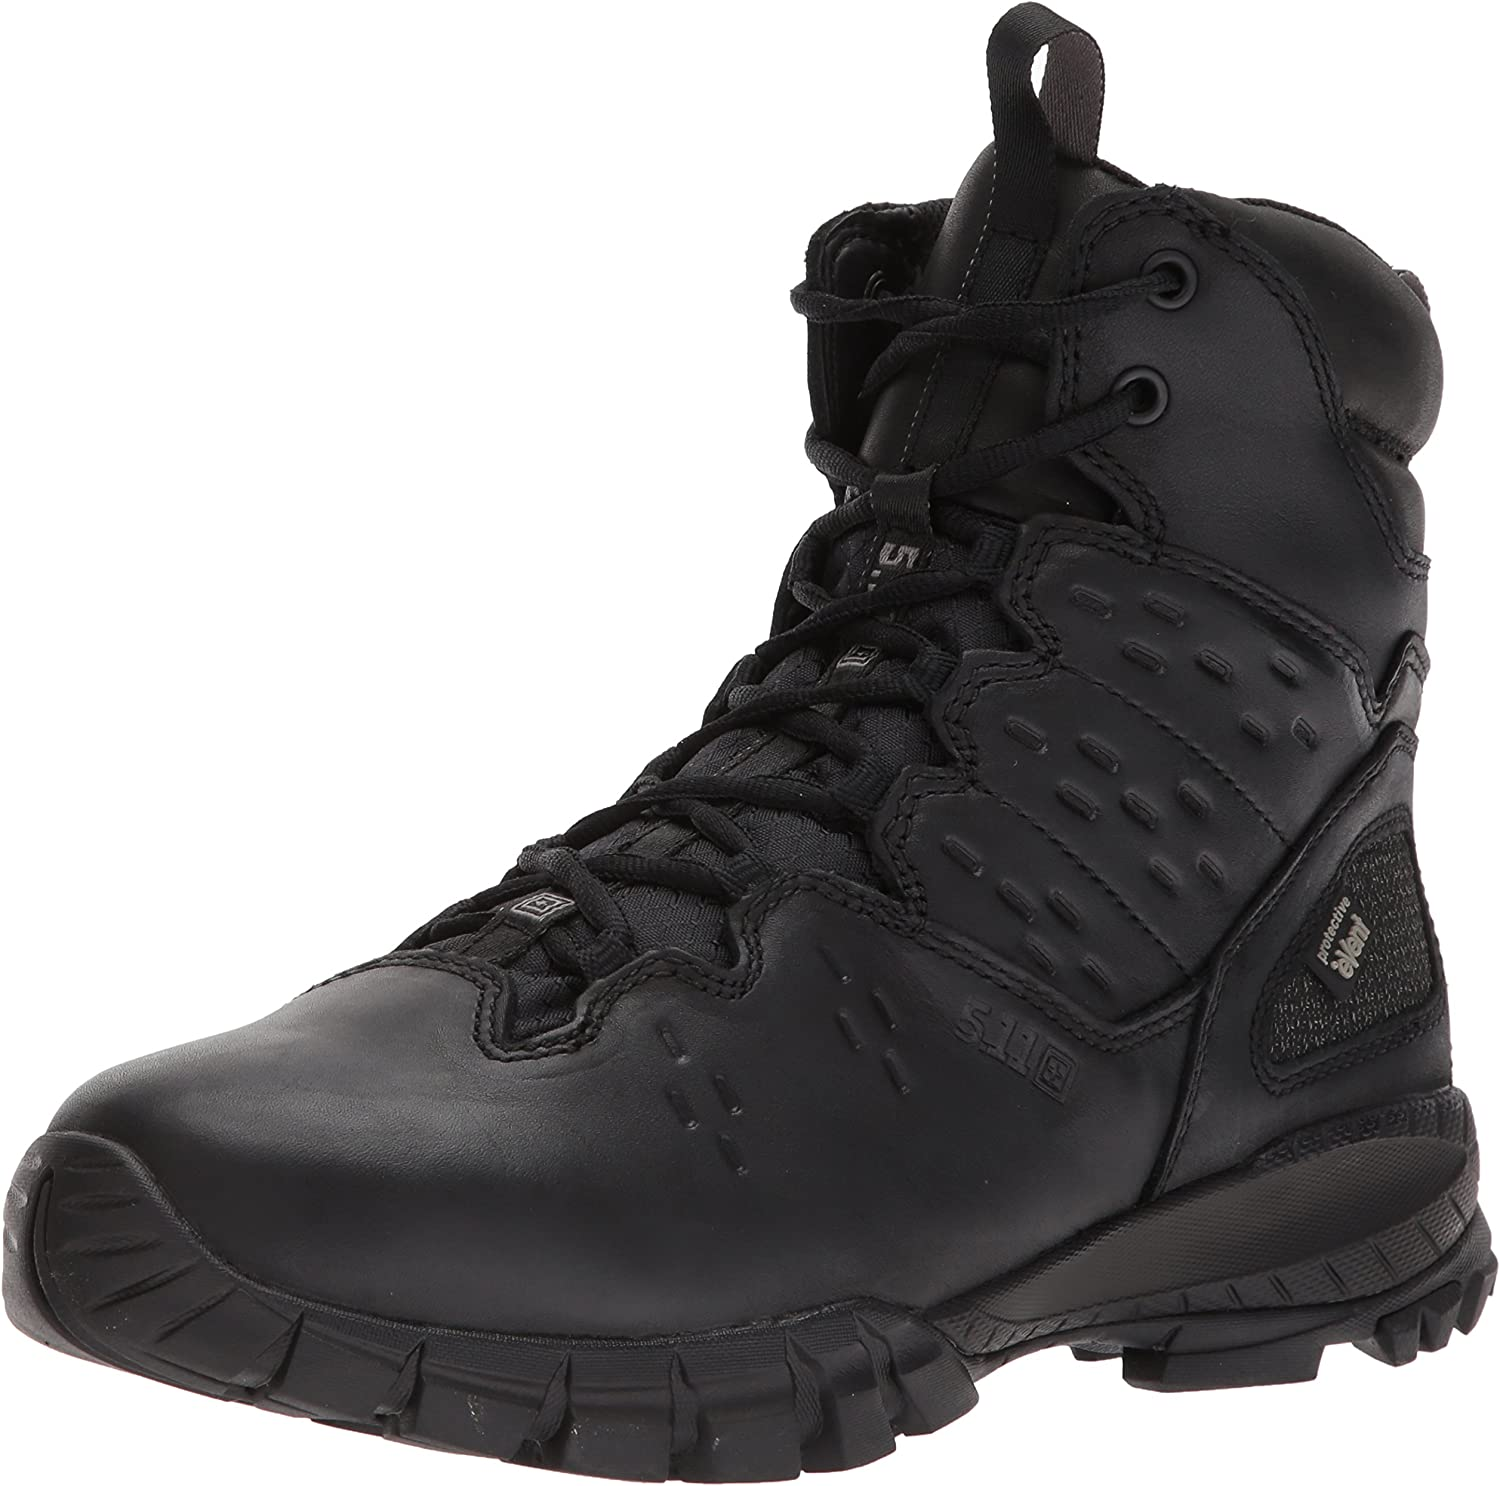 5.11 Men's XPRT 3.0 Waterproof 6  Boot Fire and Safety